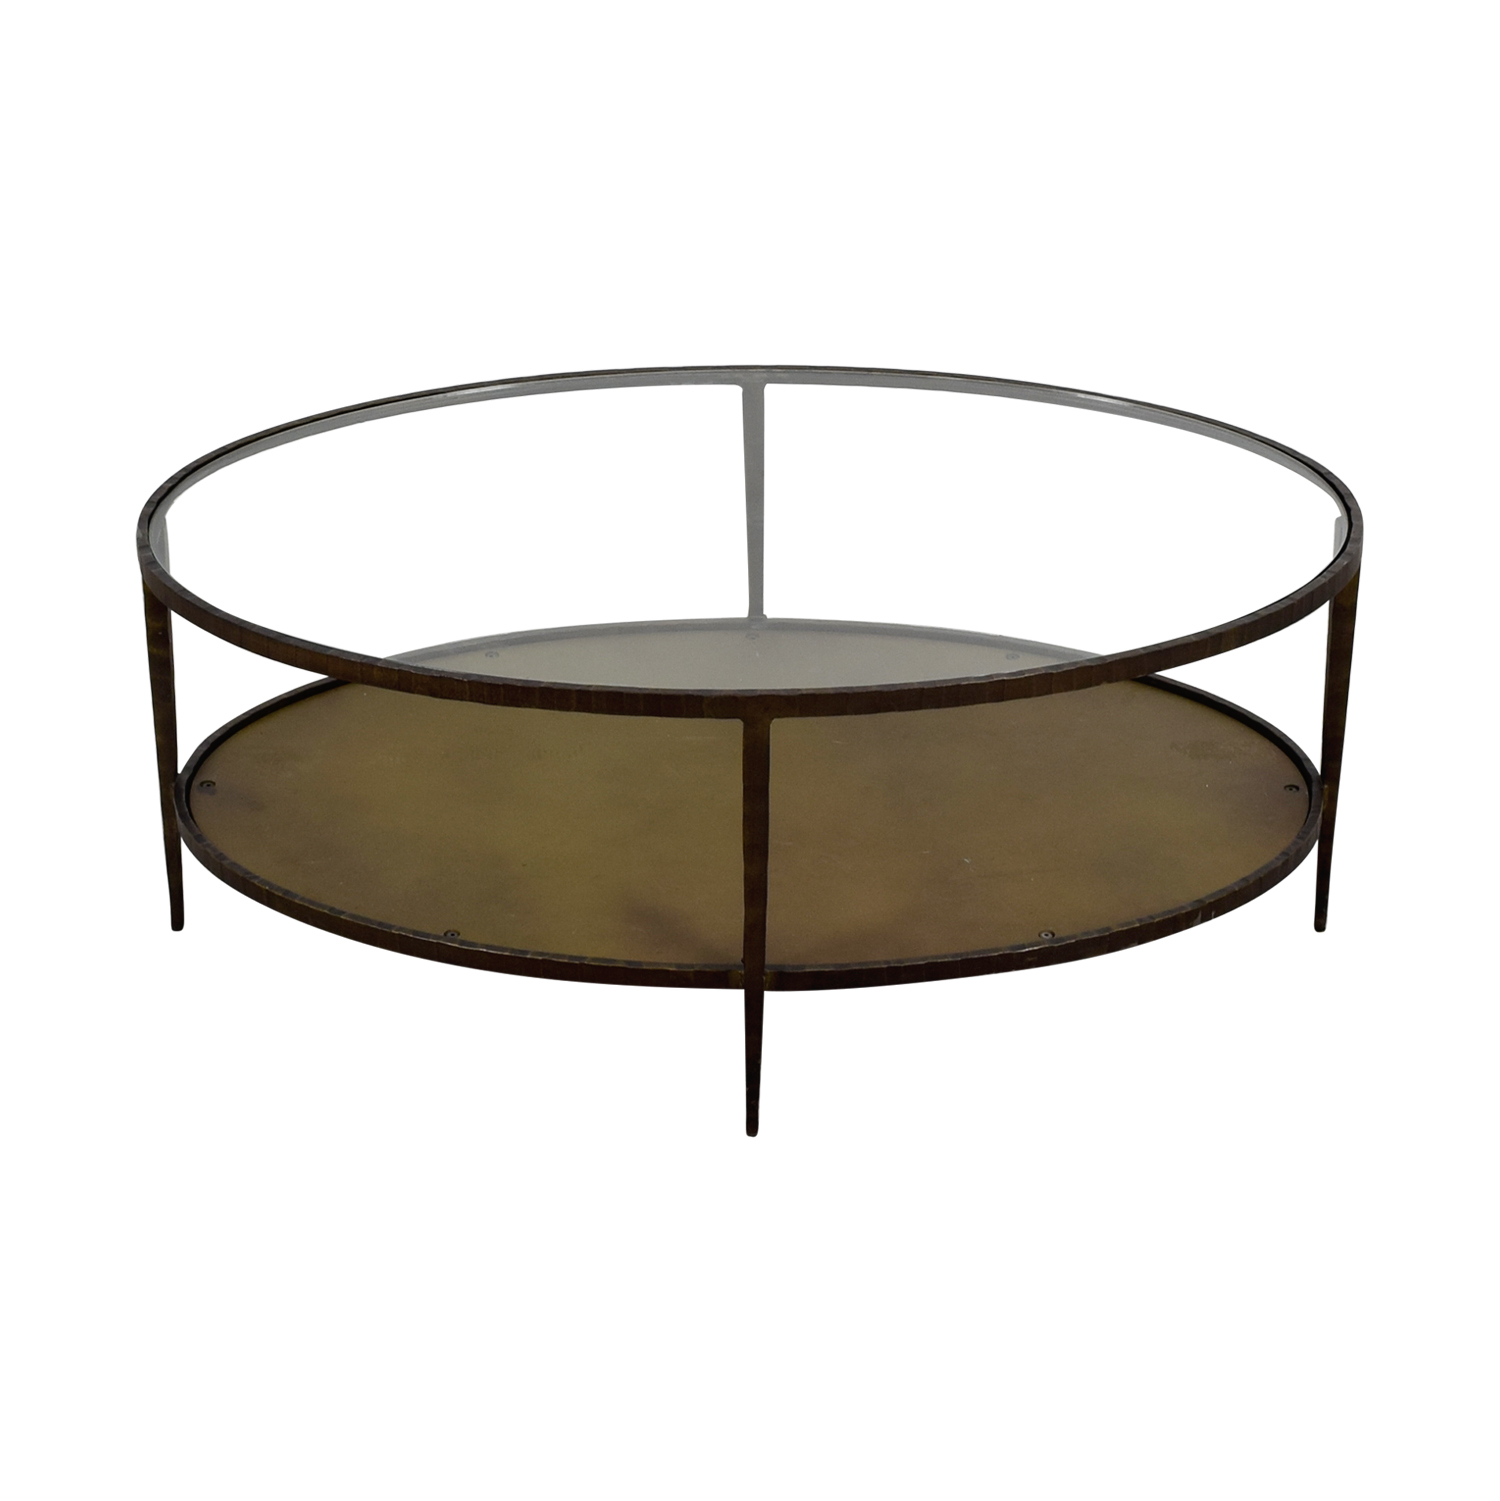 Crate & Barrel Crate & Barrel Clairemont Oval Coffee Table on sale